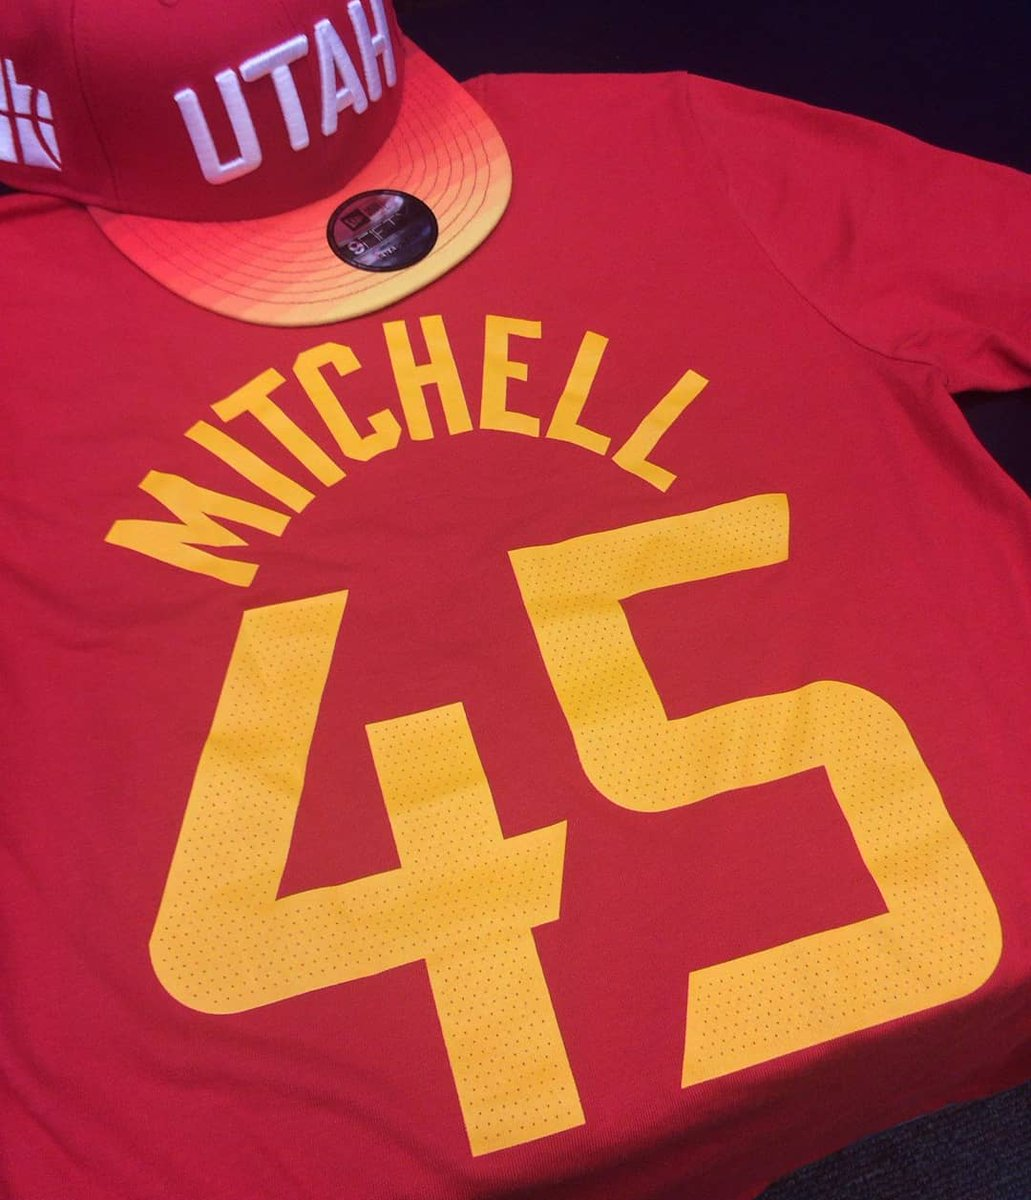 new arrival a7ef1 822d5 Donovan Mitchell on Twitter: